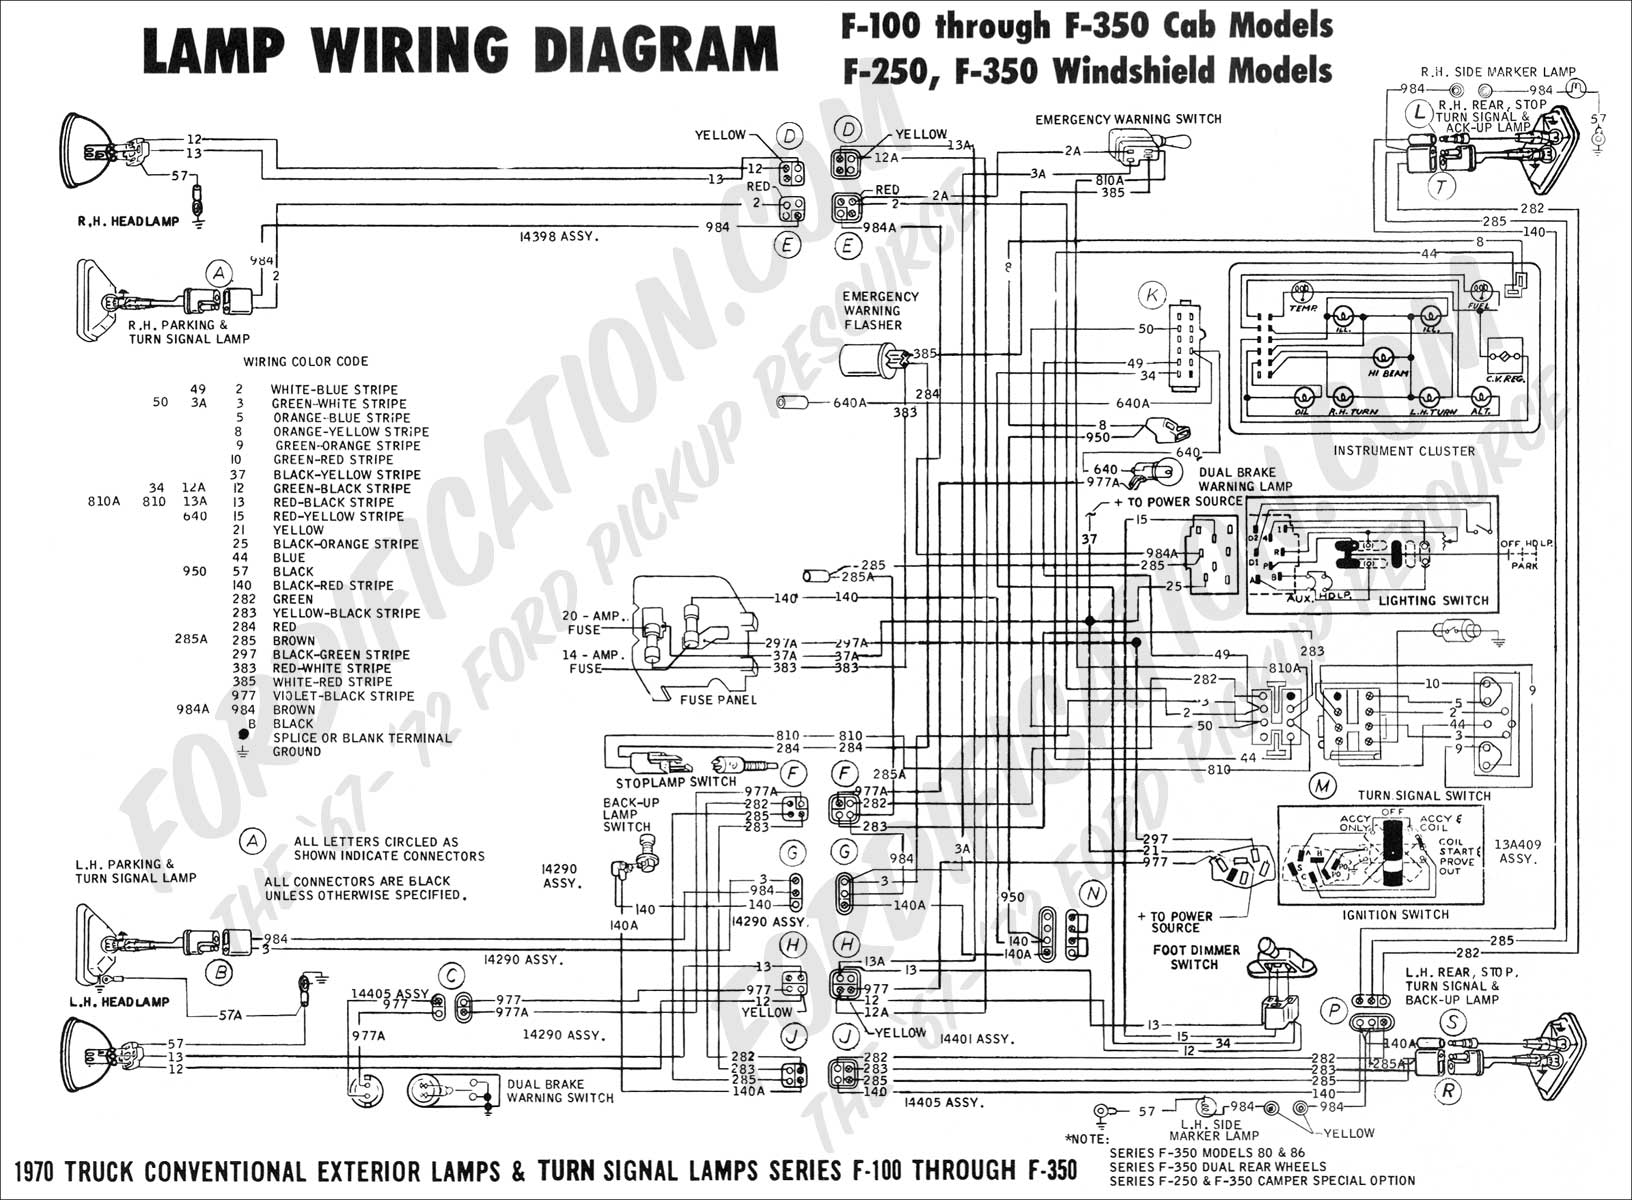 f250 dash wiring diagram wiring wiring diagram for light switch u2022 rh prestonfarmmotors co 1970 Ford F100 Wiring Harness Ford Ignition Wiring Harness